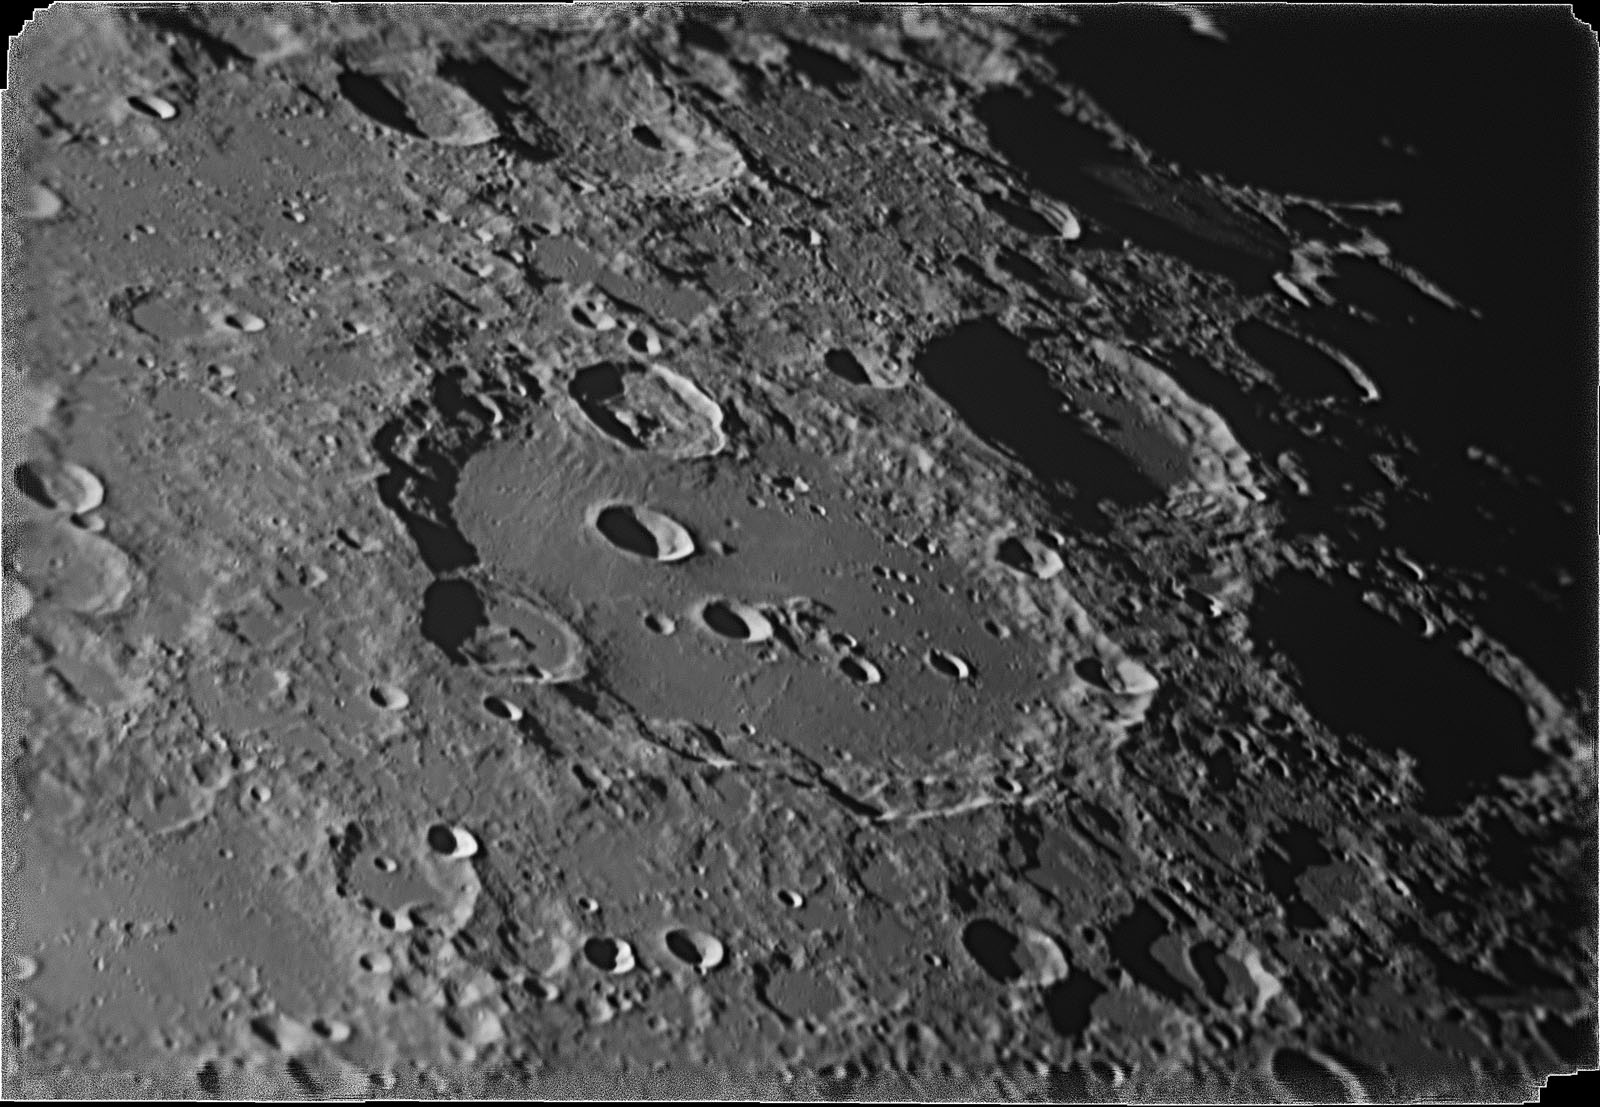 Moon_095500_zwo_asi178mm_r_5_2017_1